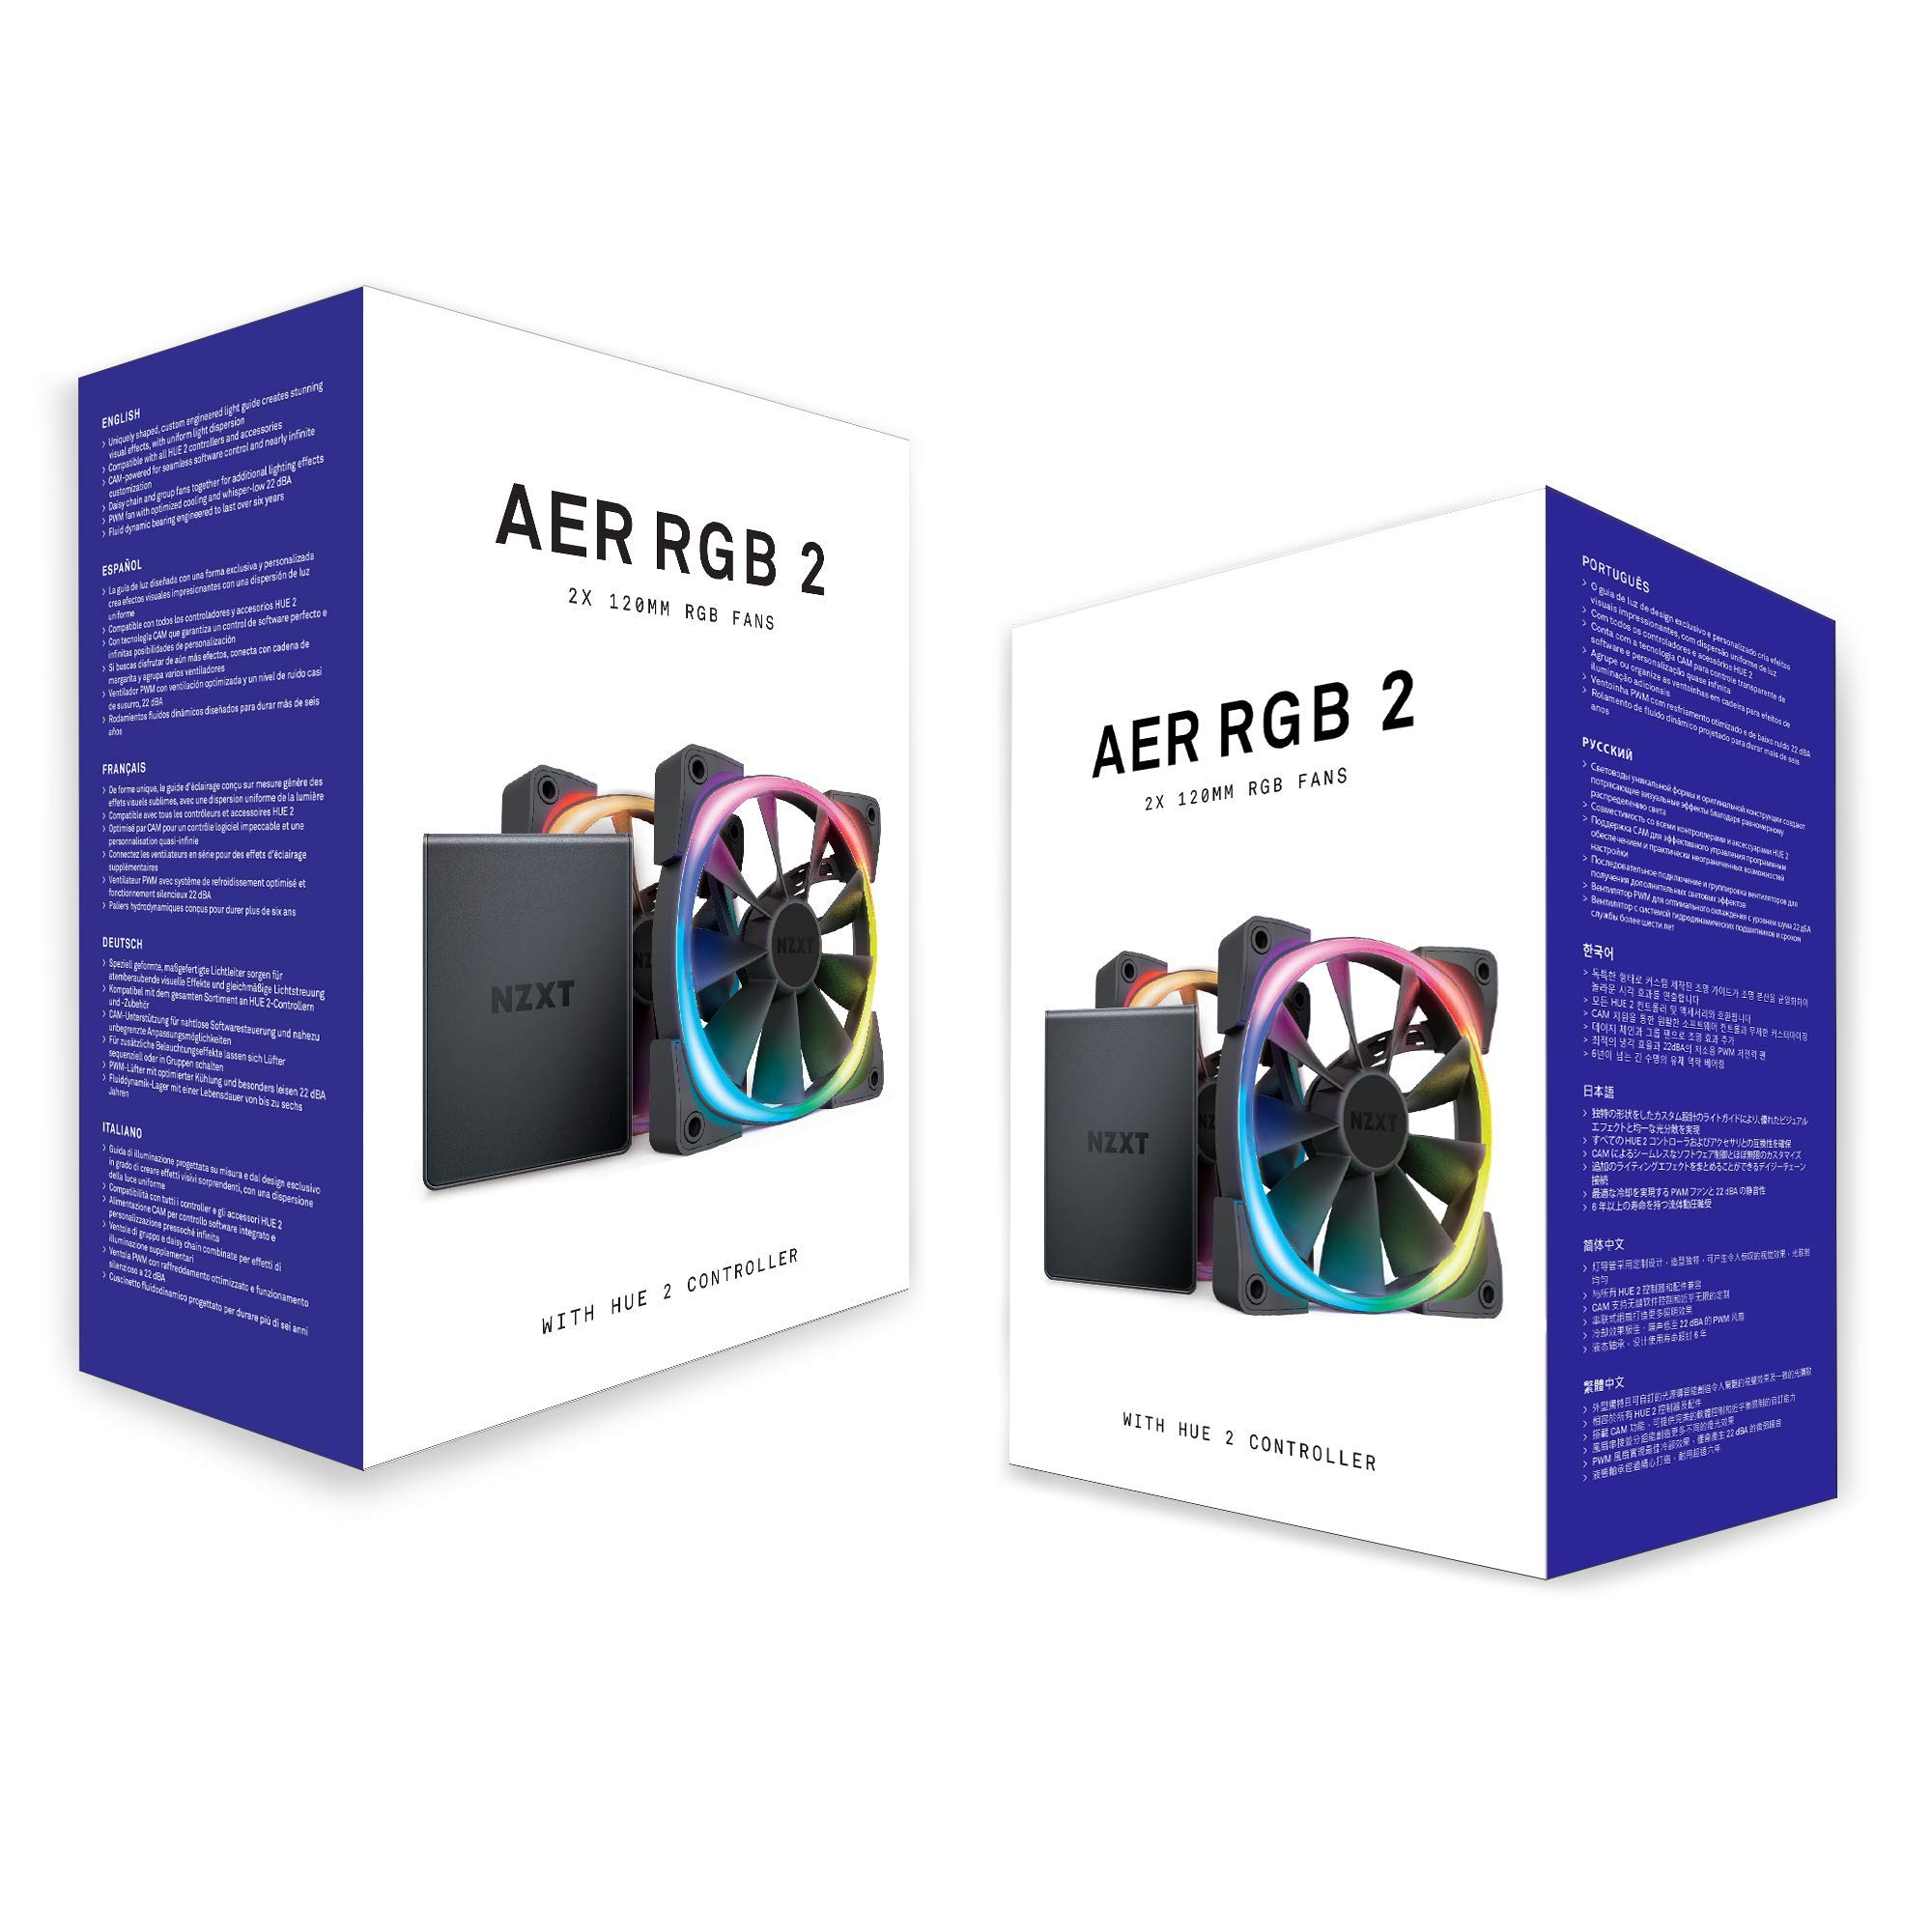 NZXT AER RGB 2 - 2-Pack of 120mm RGB PWM Fans with Hue 2 Lighting Controller - Advanced Lighting Customization - LED RGB PWM Fans - Winglet Tips - Fluid Dynamic Bearing - PC Case Fan by NZXT (Image #7)